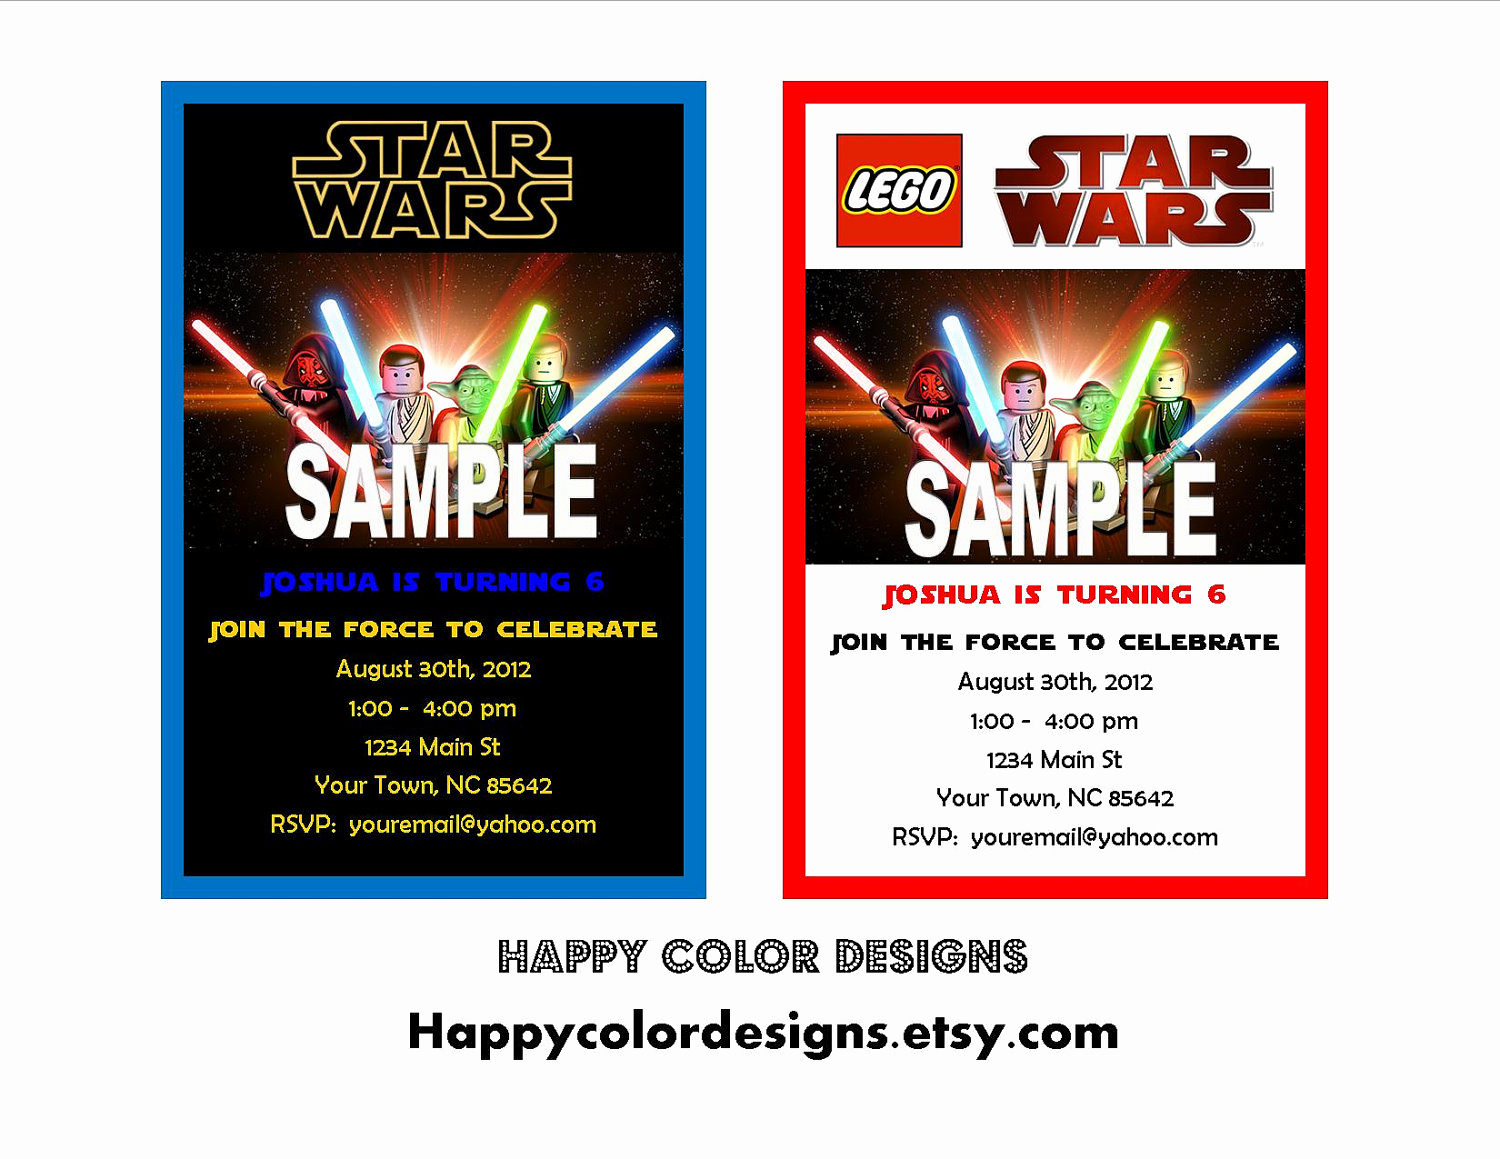 Star Wars Invitation Template Unique Free Star Wars Invitation Templates